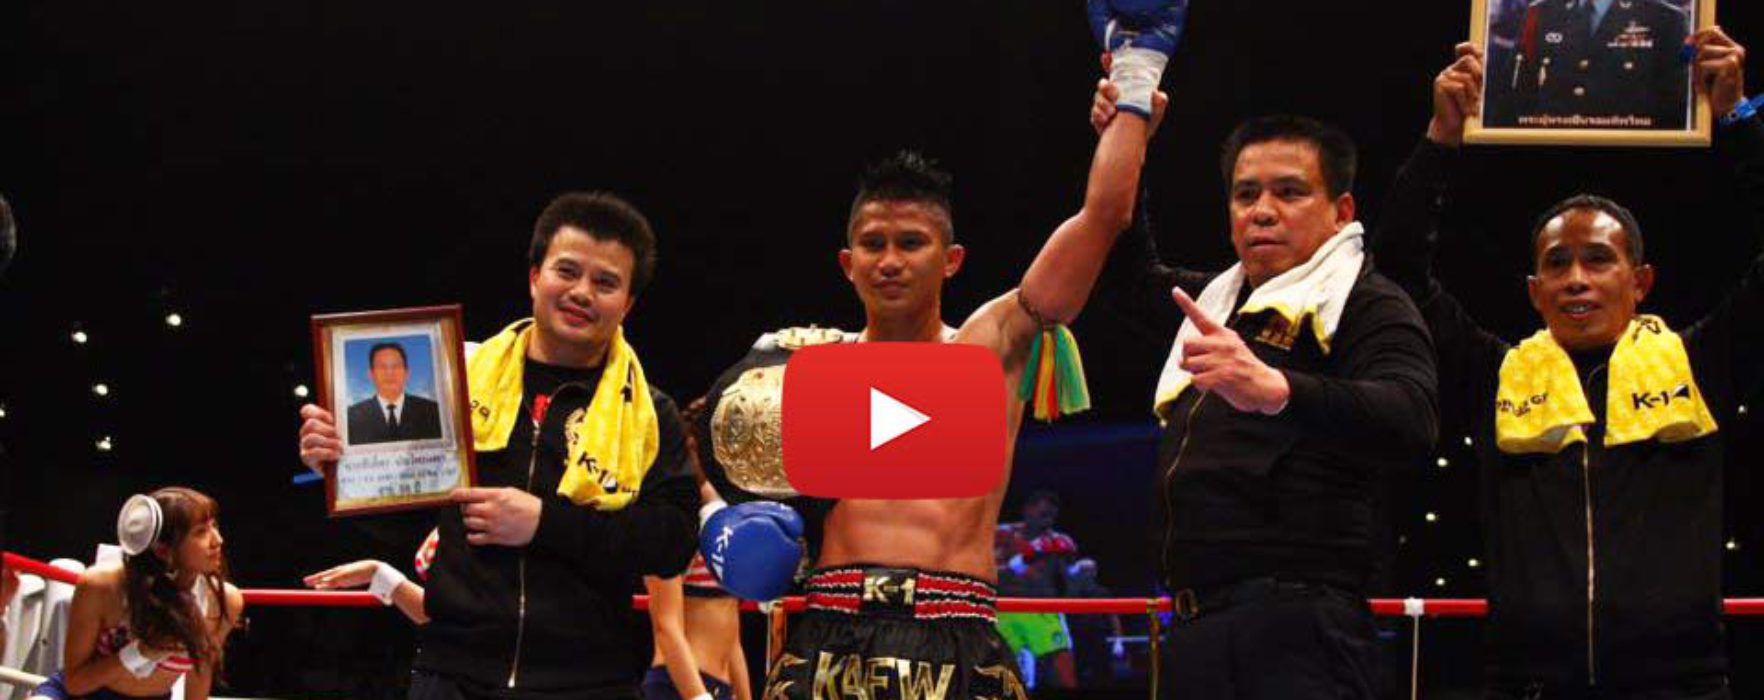 (English) Videos: Kaew Fairtex wins the K-1 World GP 2016 -65kg World Tournament – Japan – 24/06/2016